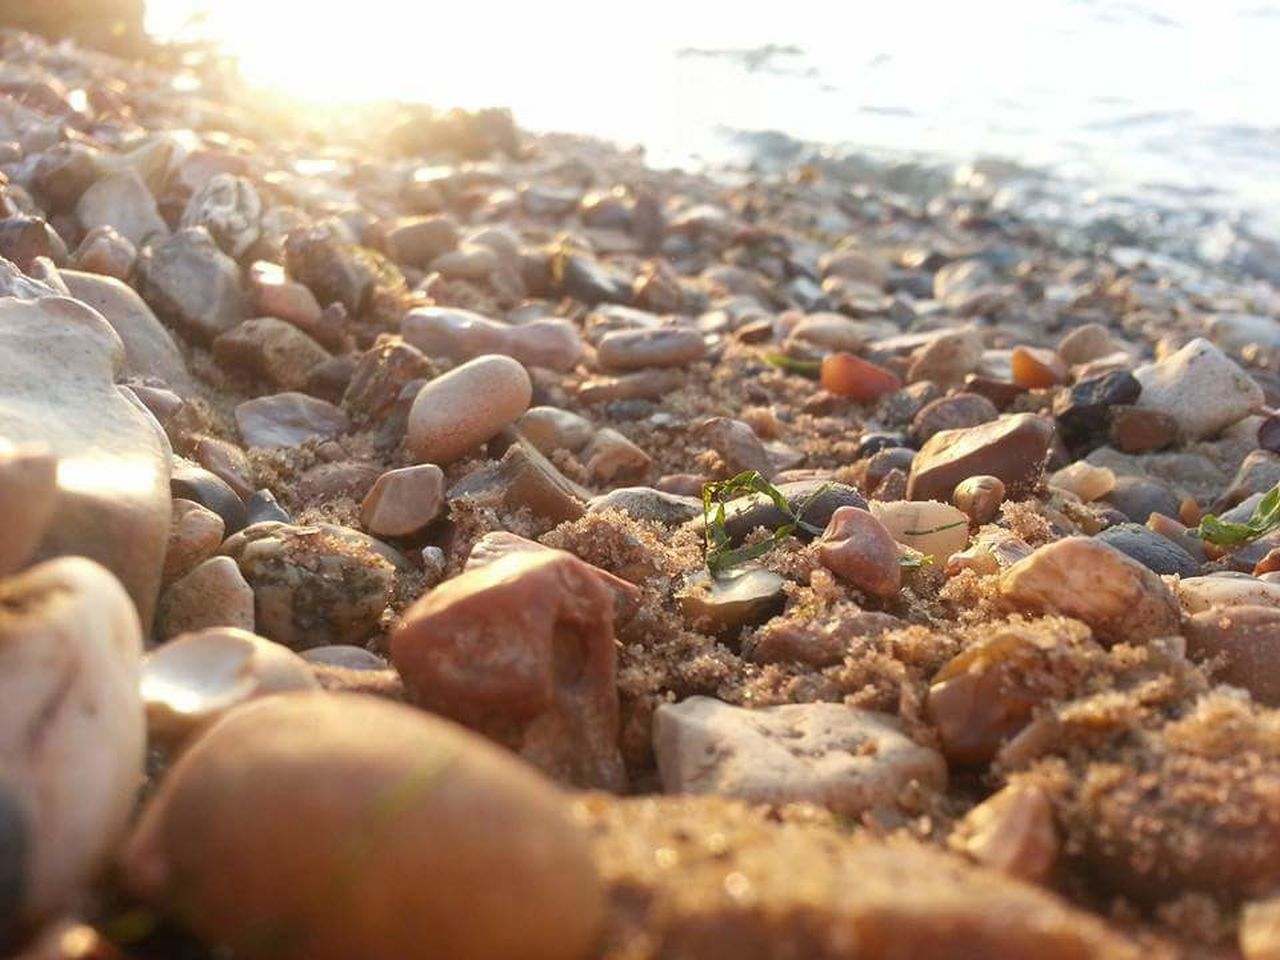 pebble, beach, pebble beach, surface level, shore, nature, selective focus, outdoors, no people, day, close-up, sunlight, beauty in nature